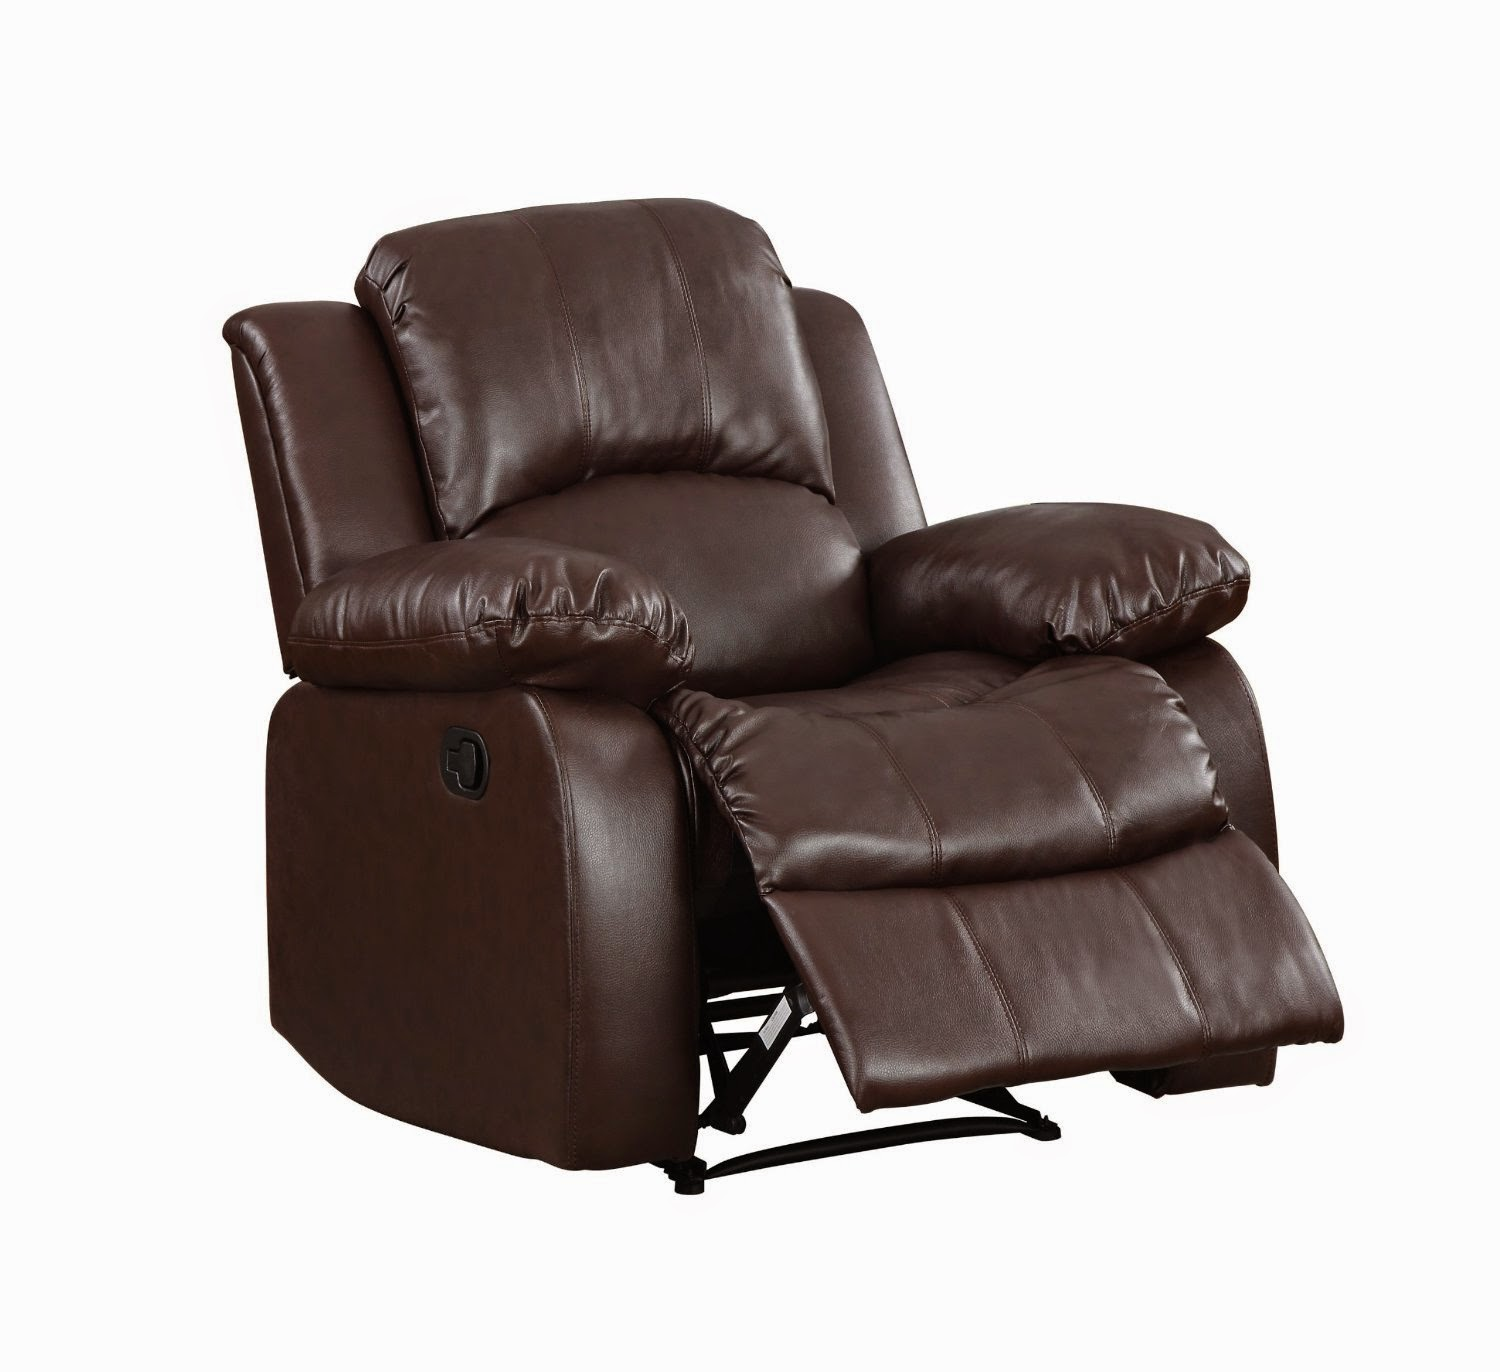 http://www.cochaser.com/blog/wp-content/uploads/2016/07/Costco-463006-Pulaski-Furniture-Leather-Reclining-safe.jpg